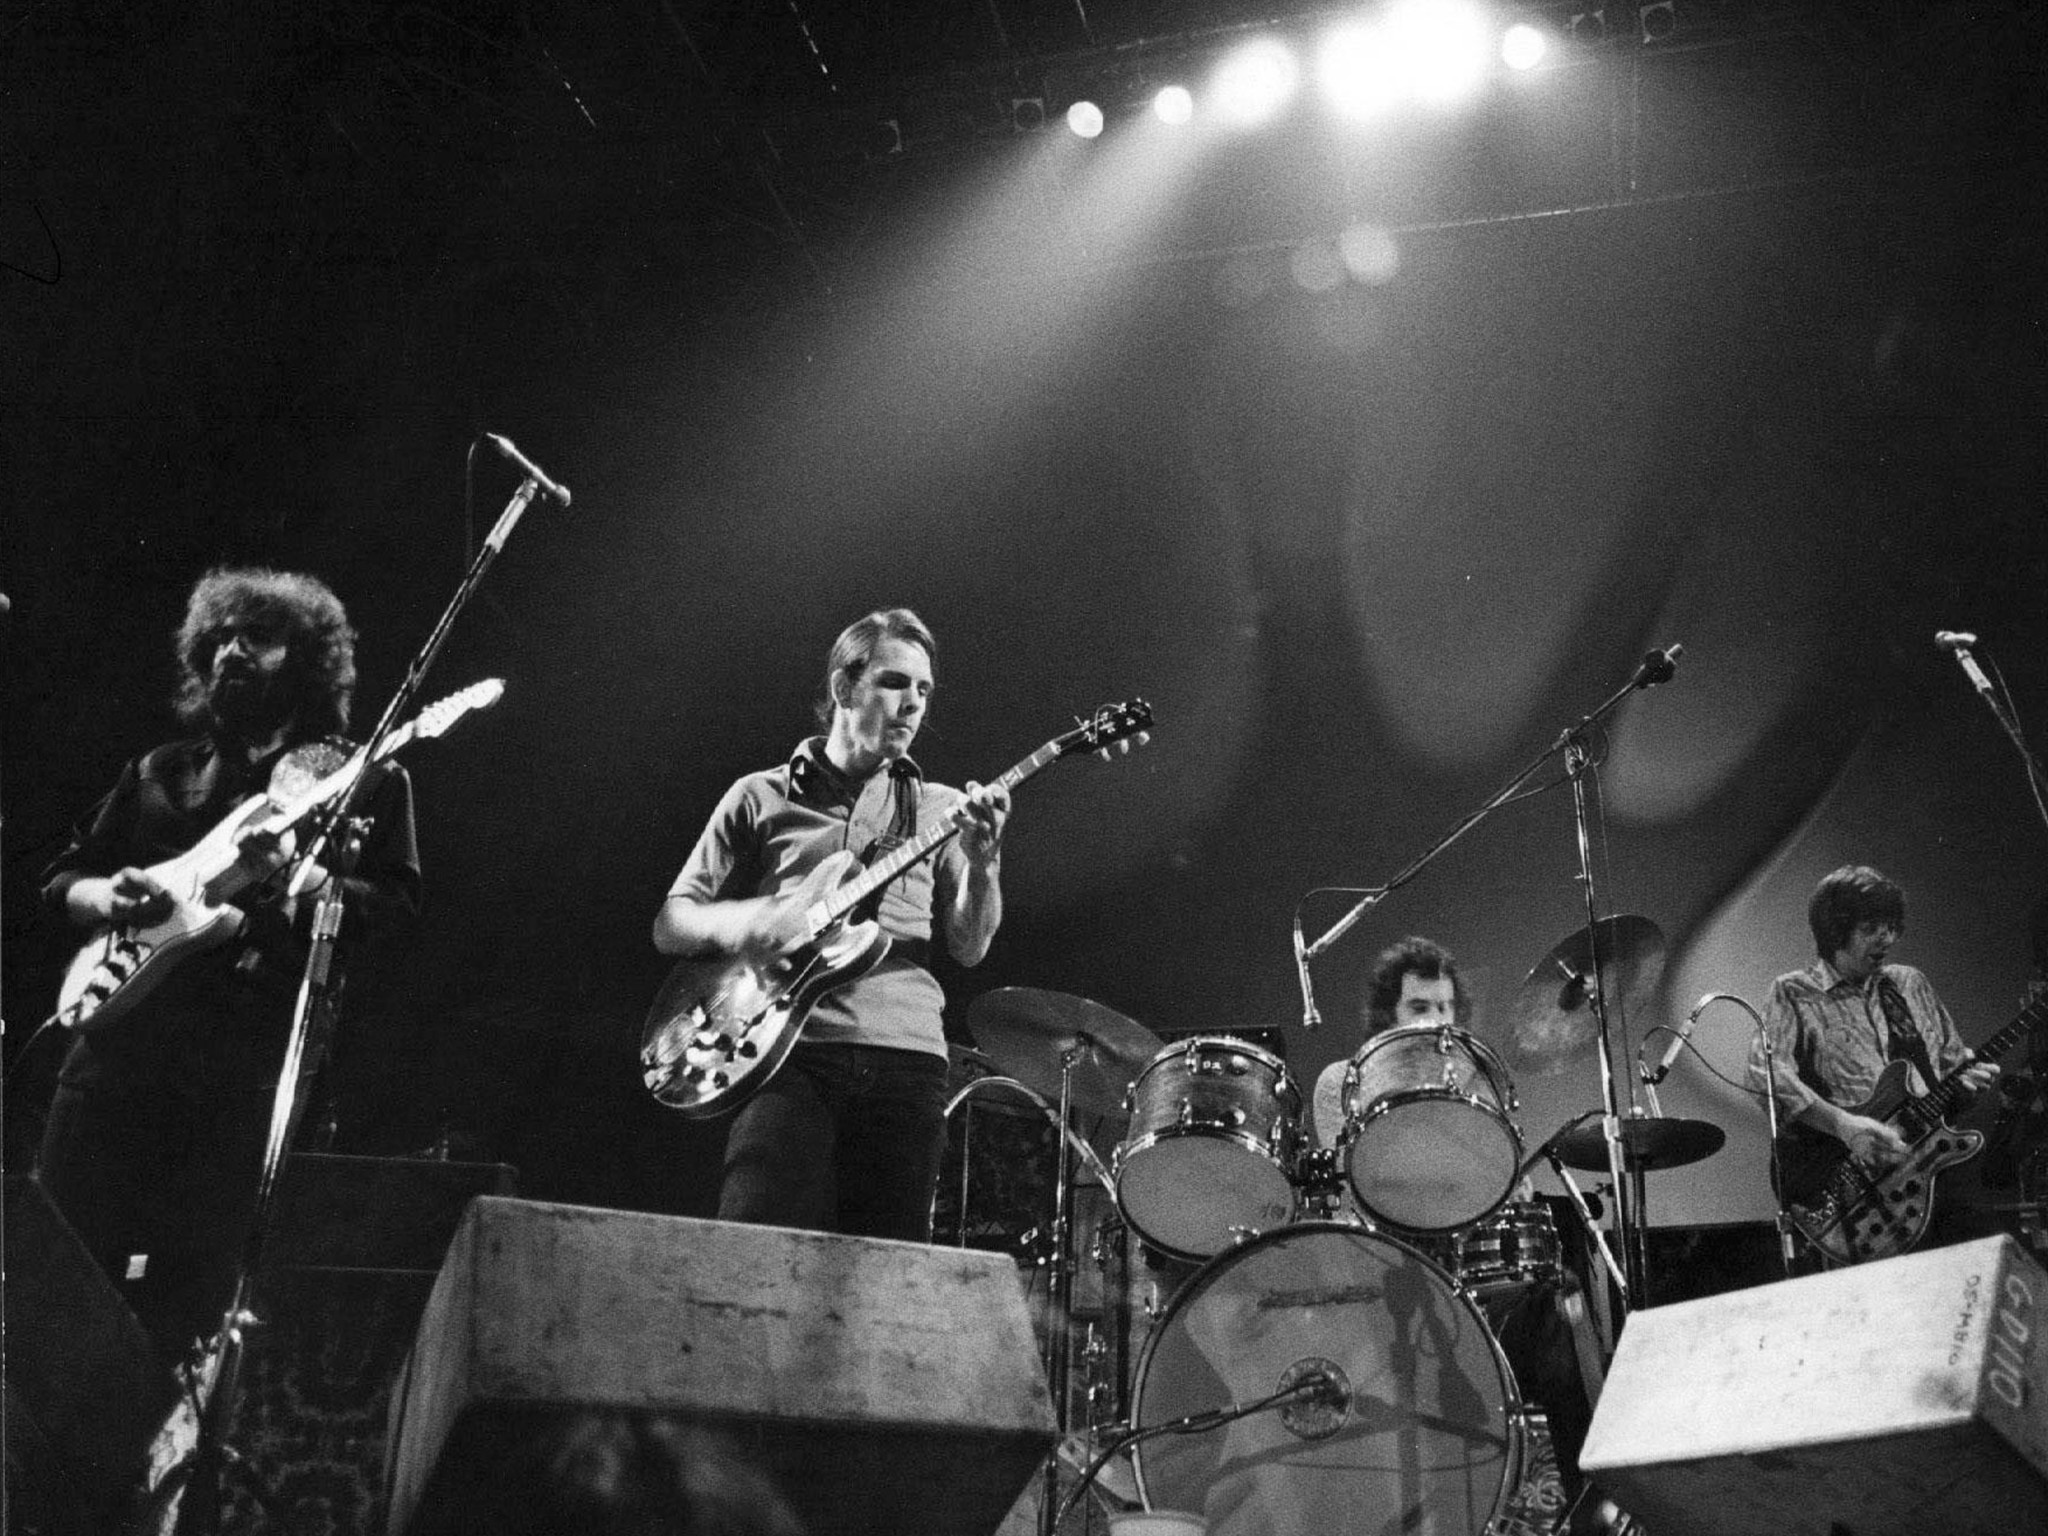 2048x1536 Grateful Dead: Martin Scorsese's documentary marks the psychedelic rock  band's 50th anniversary | The Independent